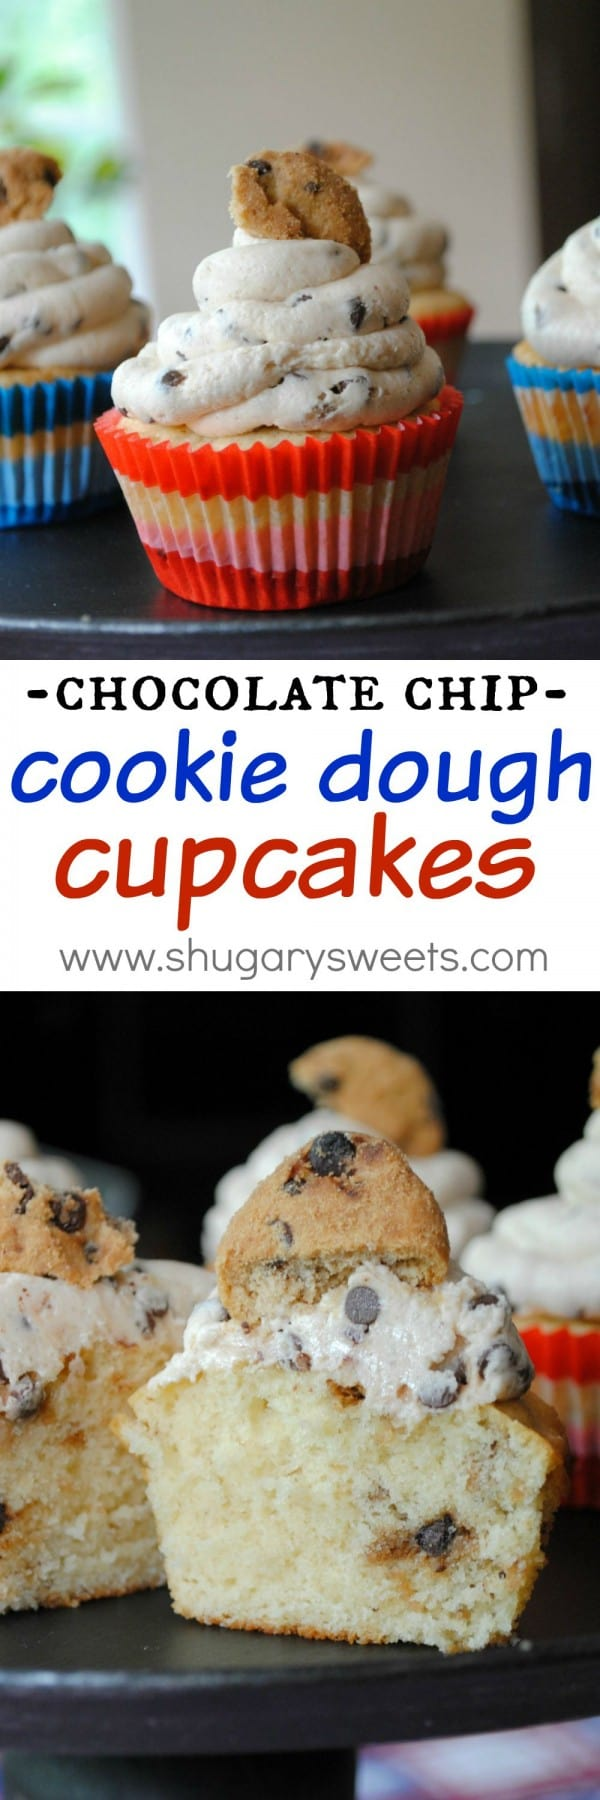 Chocolate Chip Cookie Cupcakes with a sweet cookie dough frosting!! So fun and delicious!